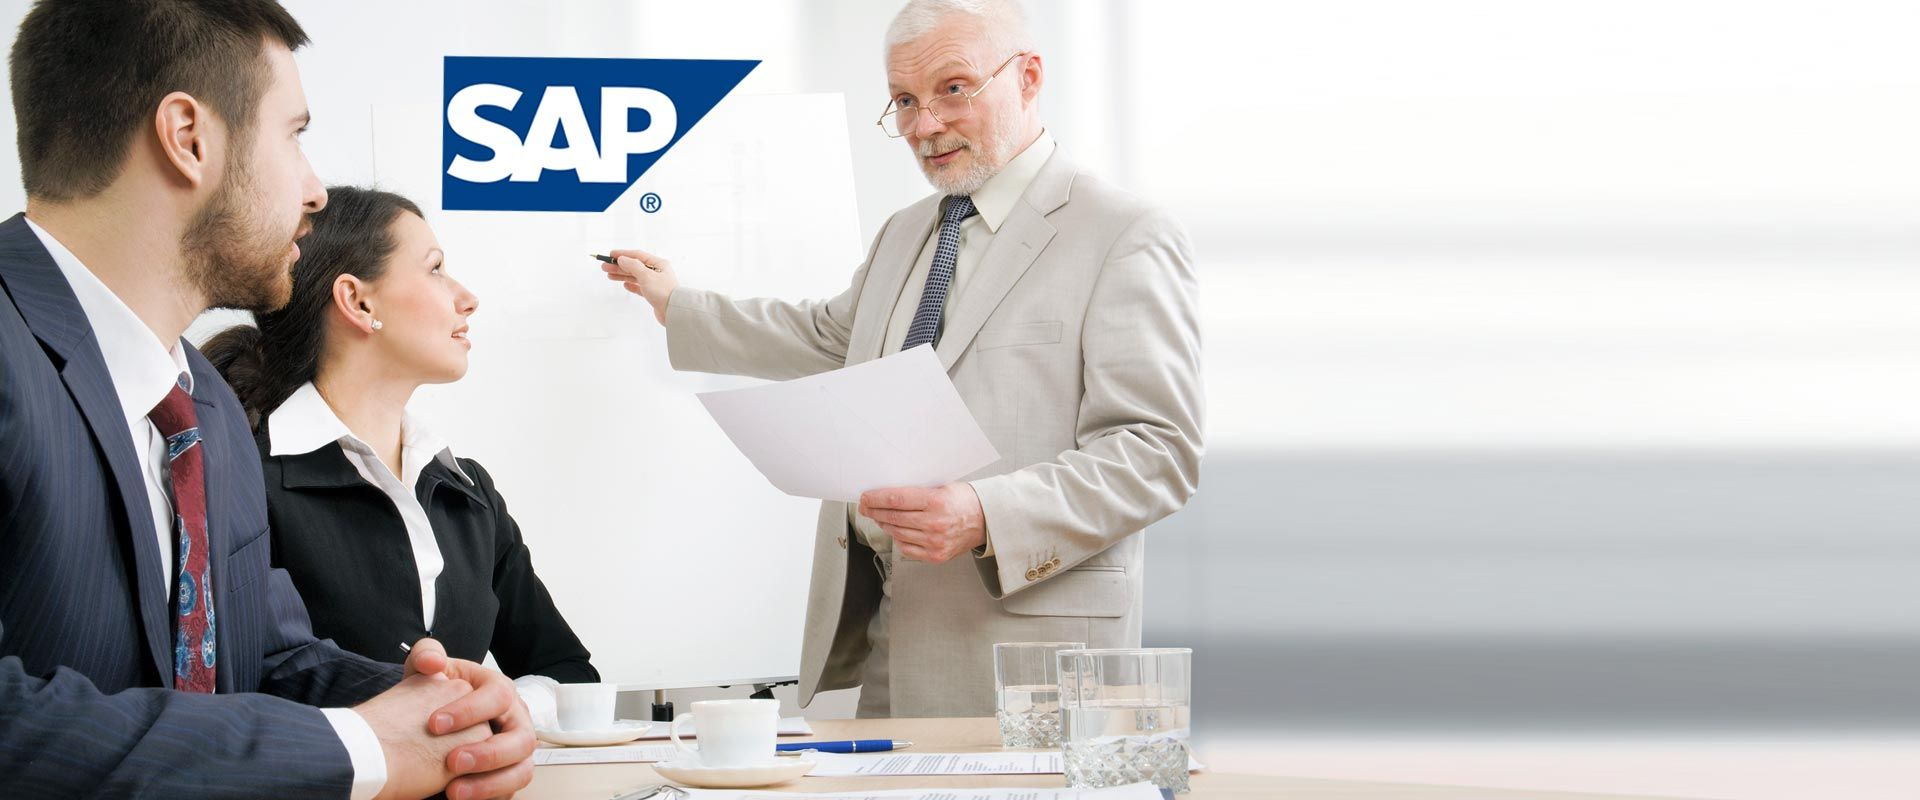 SAP SEM Consulting Company in Houston | Austin | Dallas | San Antonio | Atlanta